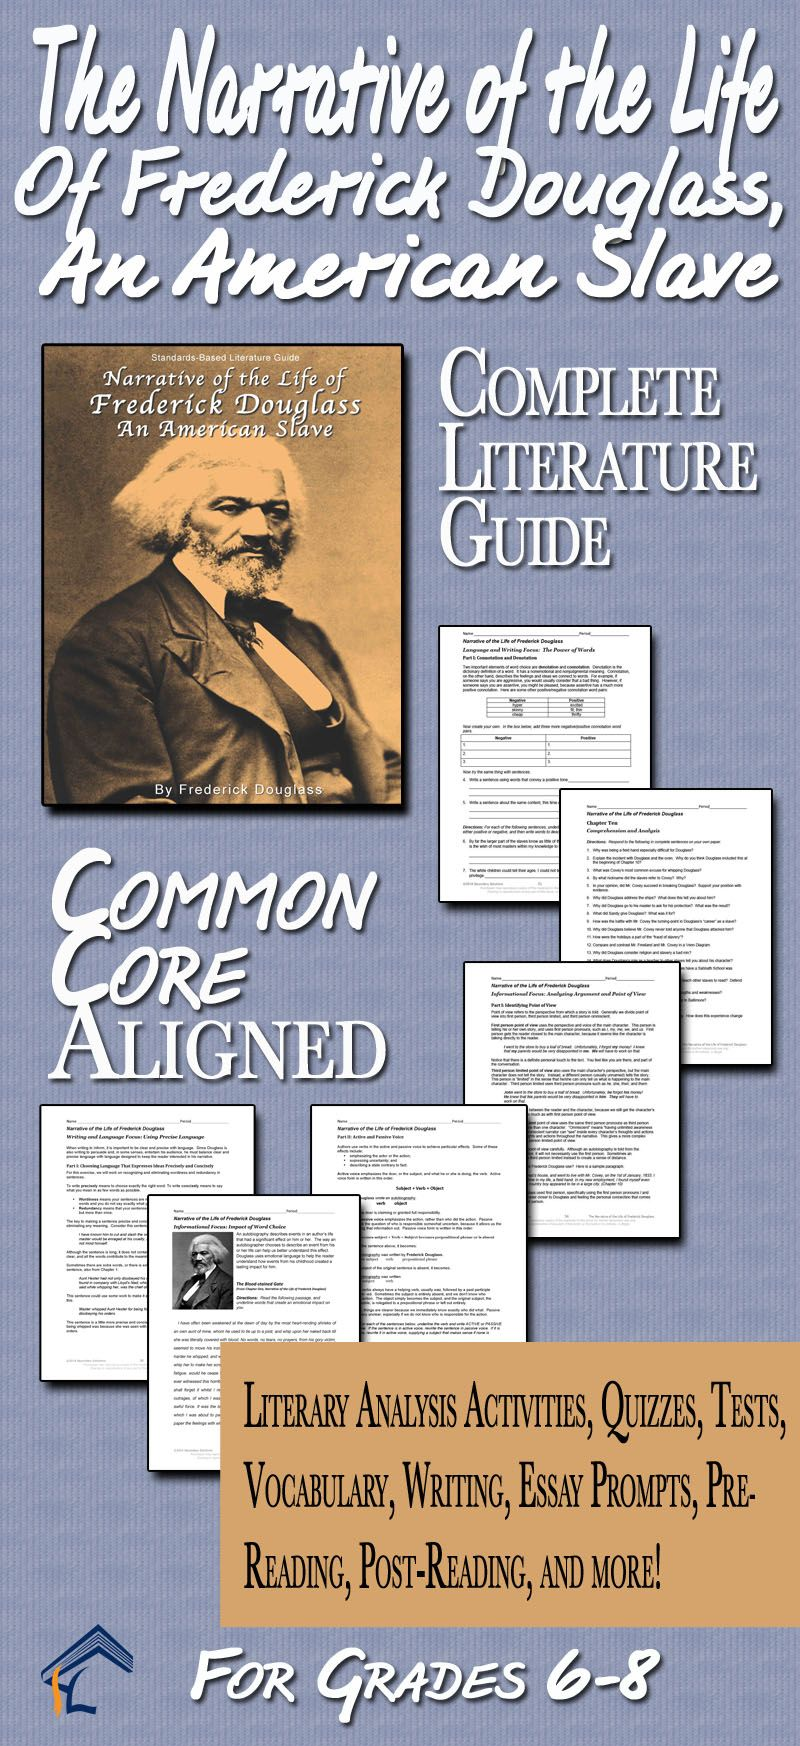 curriclum guide in english grade 6 latest